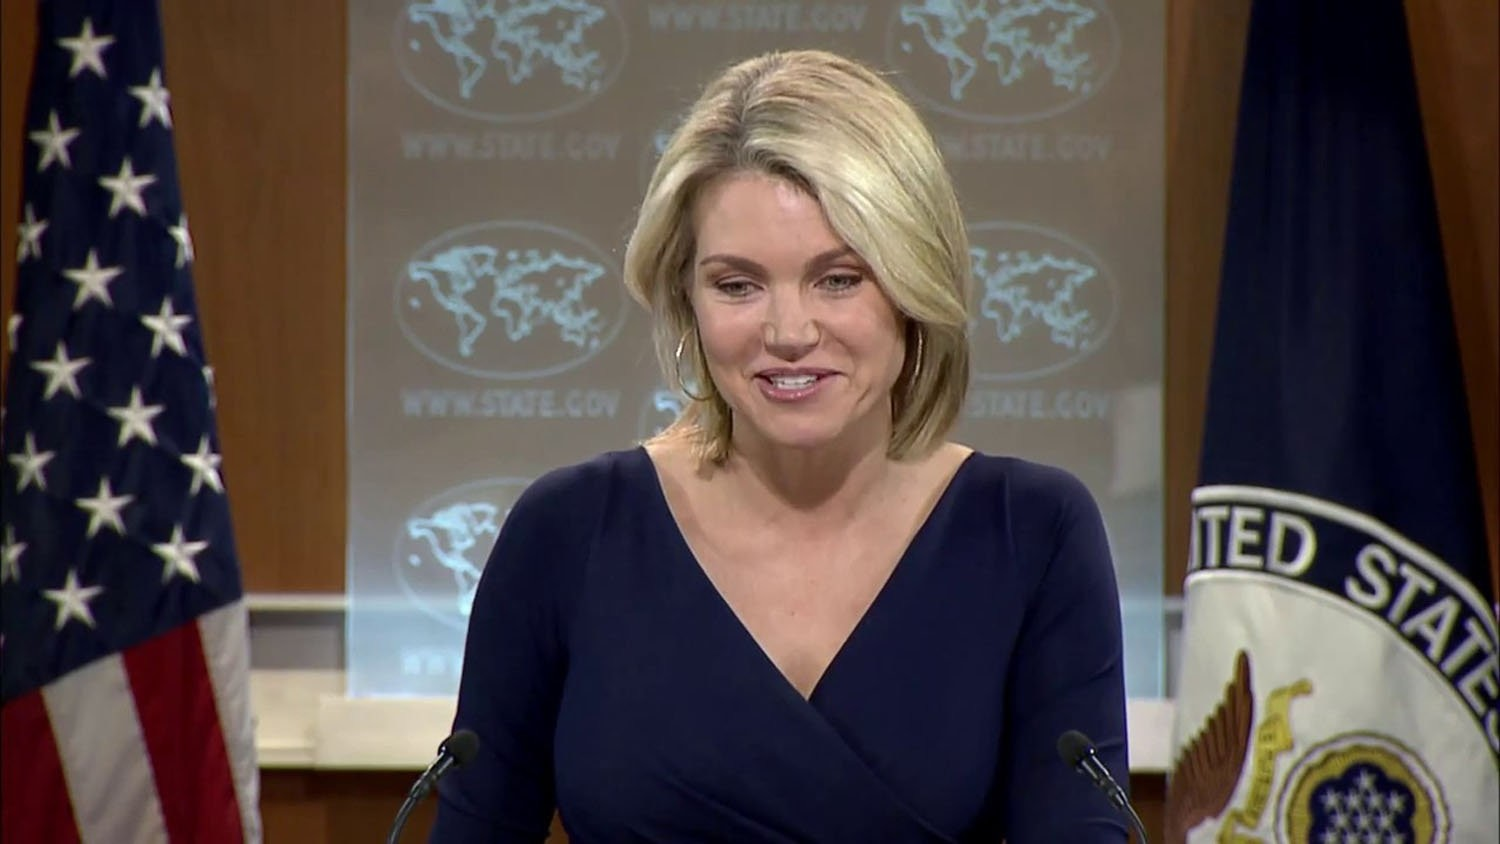 File photo shows U.S. State Department spokeswoman Heather Nauert speaking at a daily press briefing.